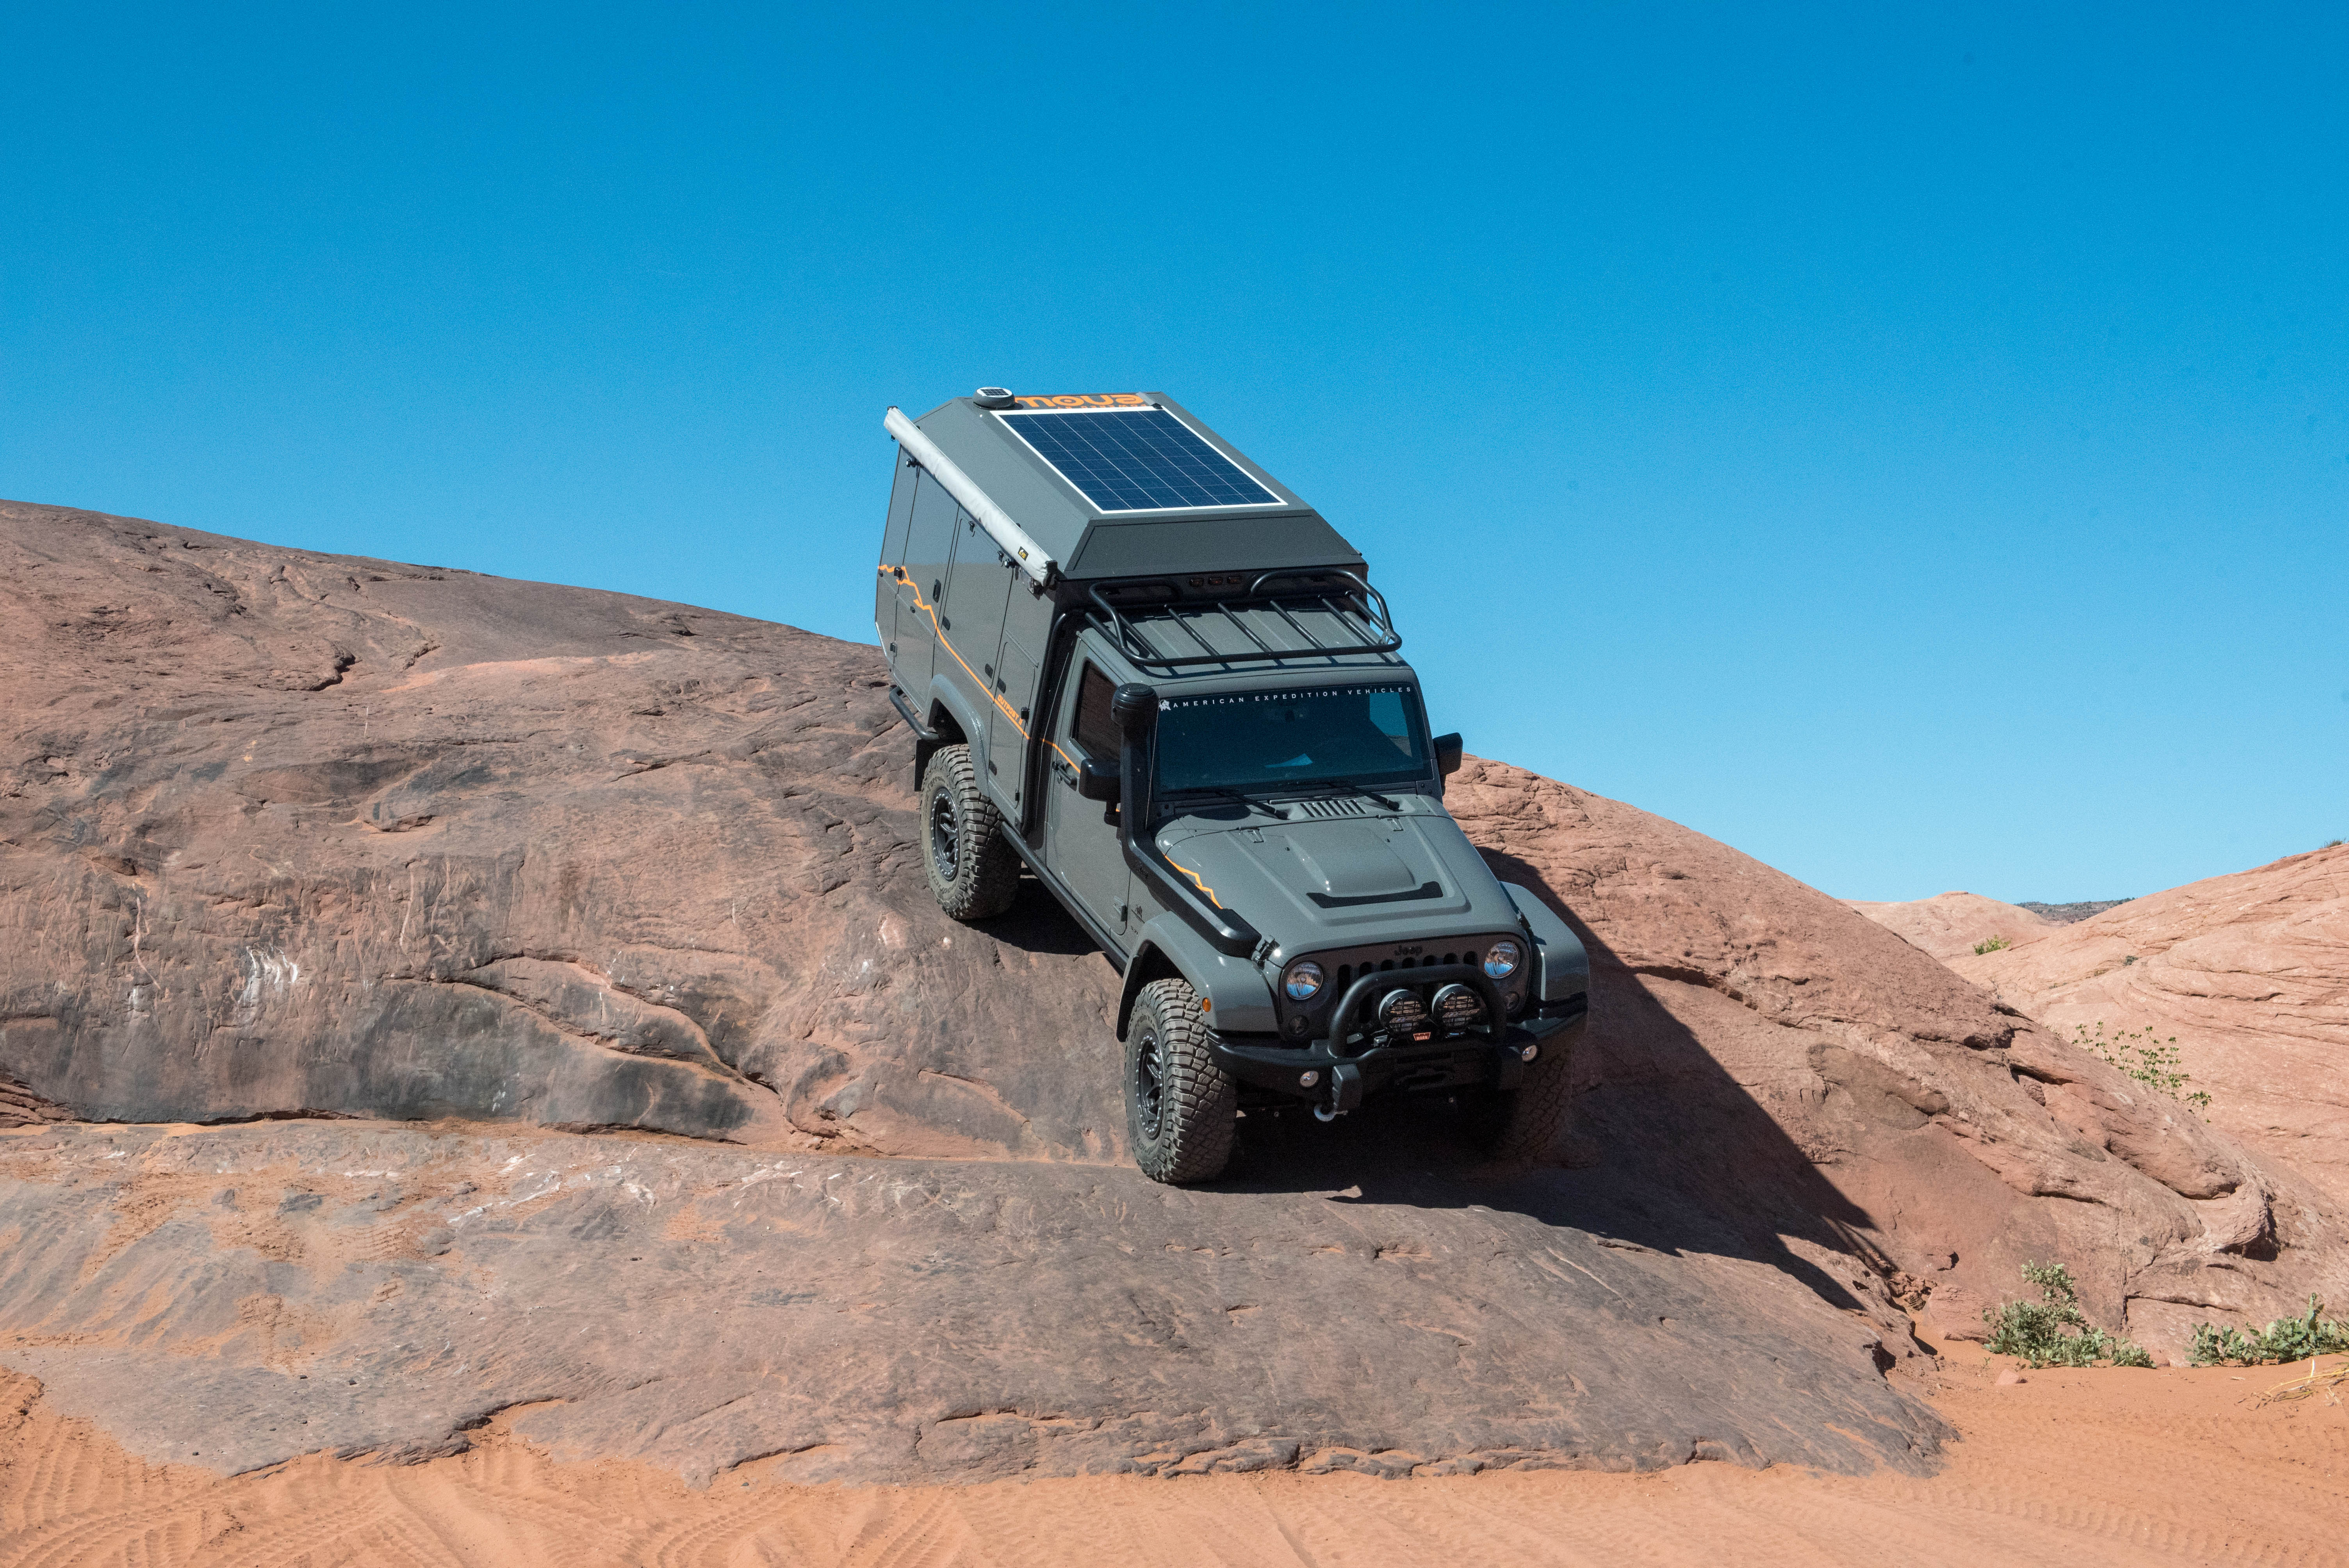 Burly truck camper is expedition ready